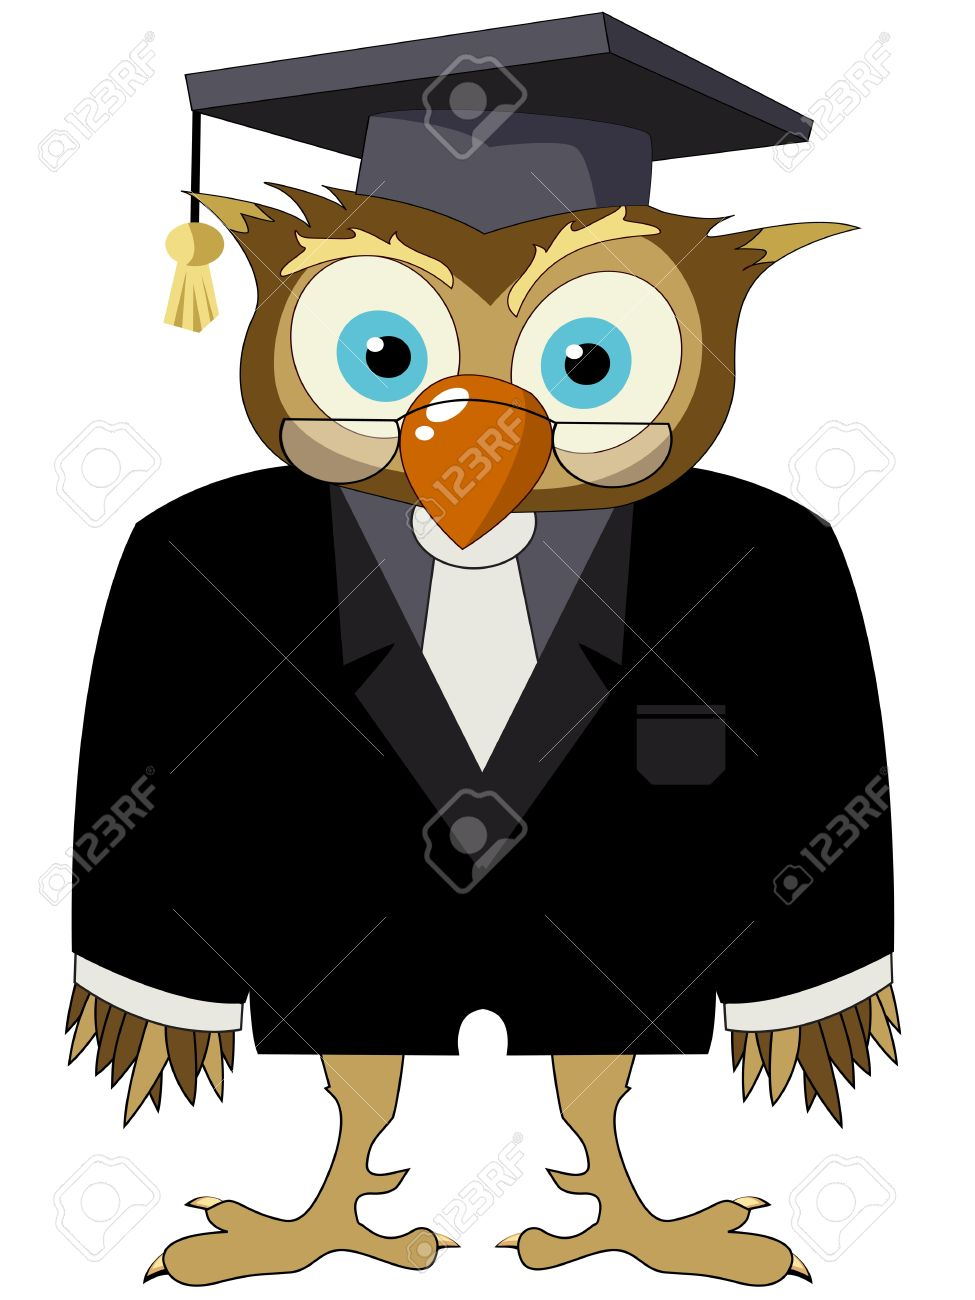 Cartoon drawing of a owl in a suit with graduate hat and glasses Stock Vector - 10135826